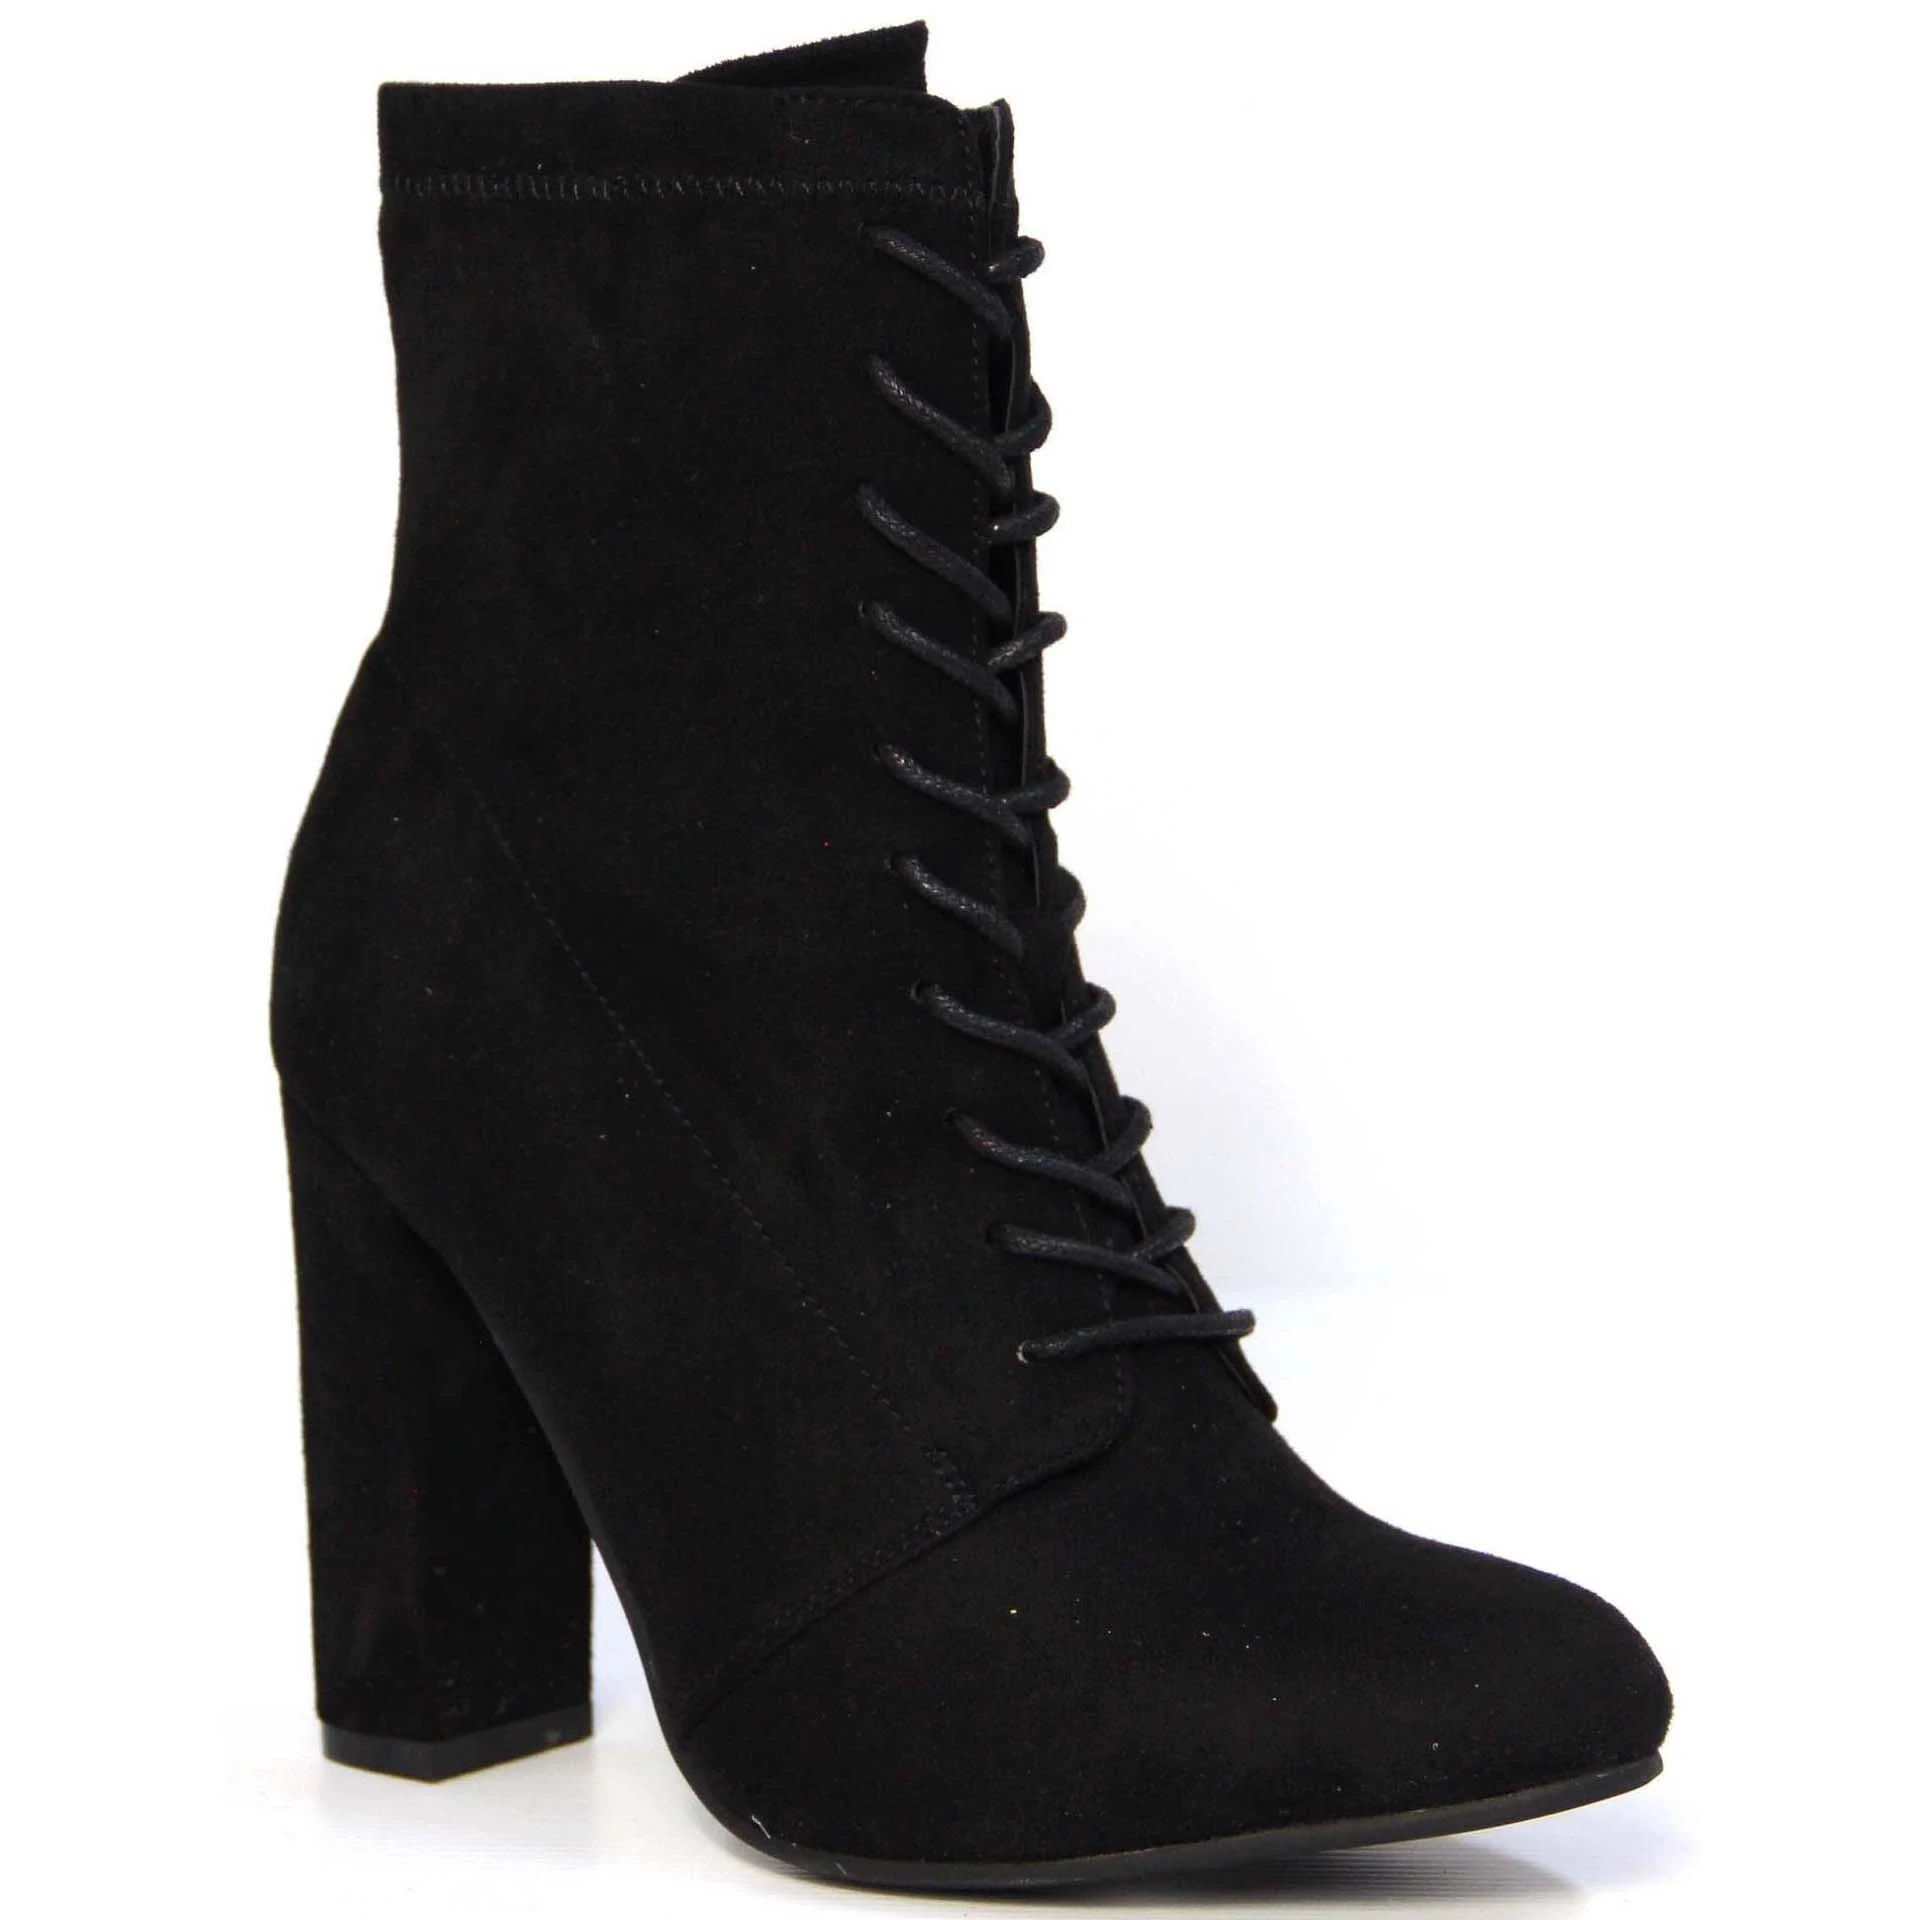 Therapy Aiken Lace Up Ankle Boot in